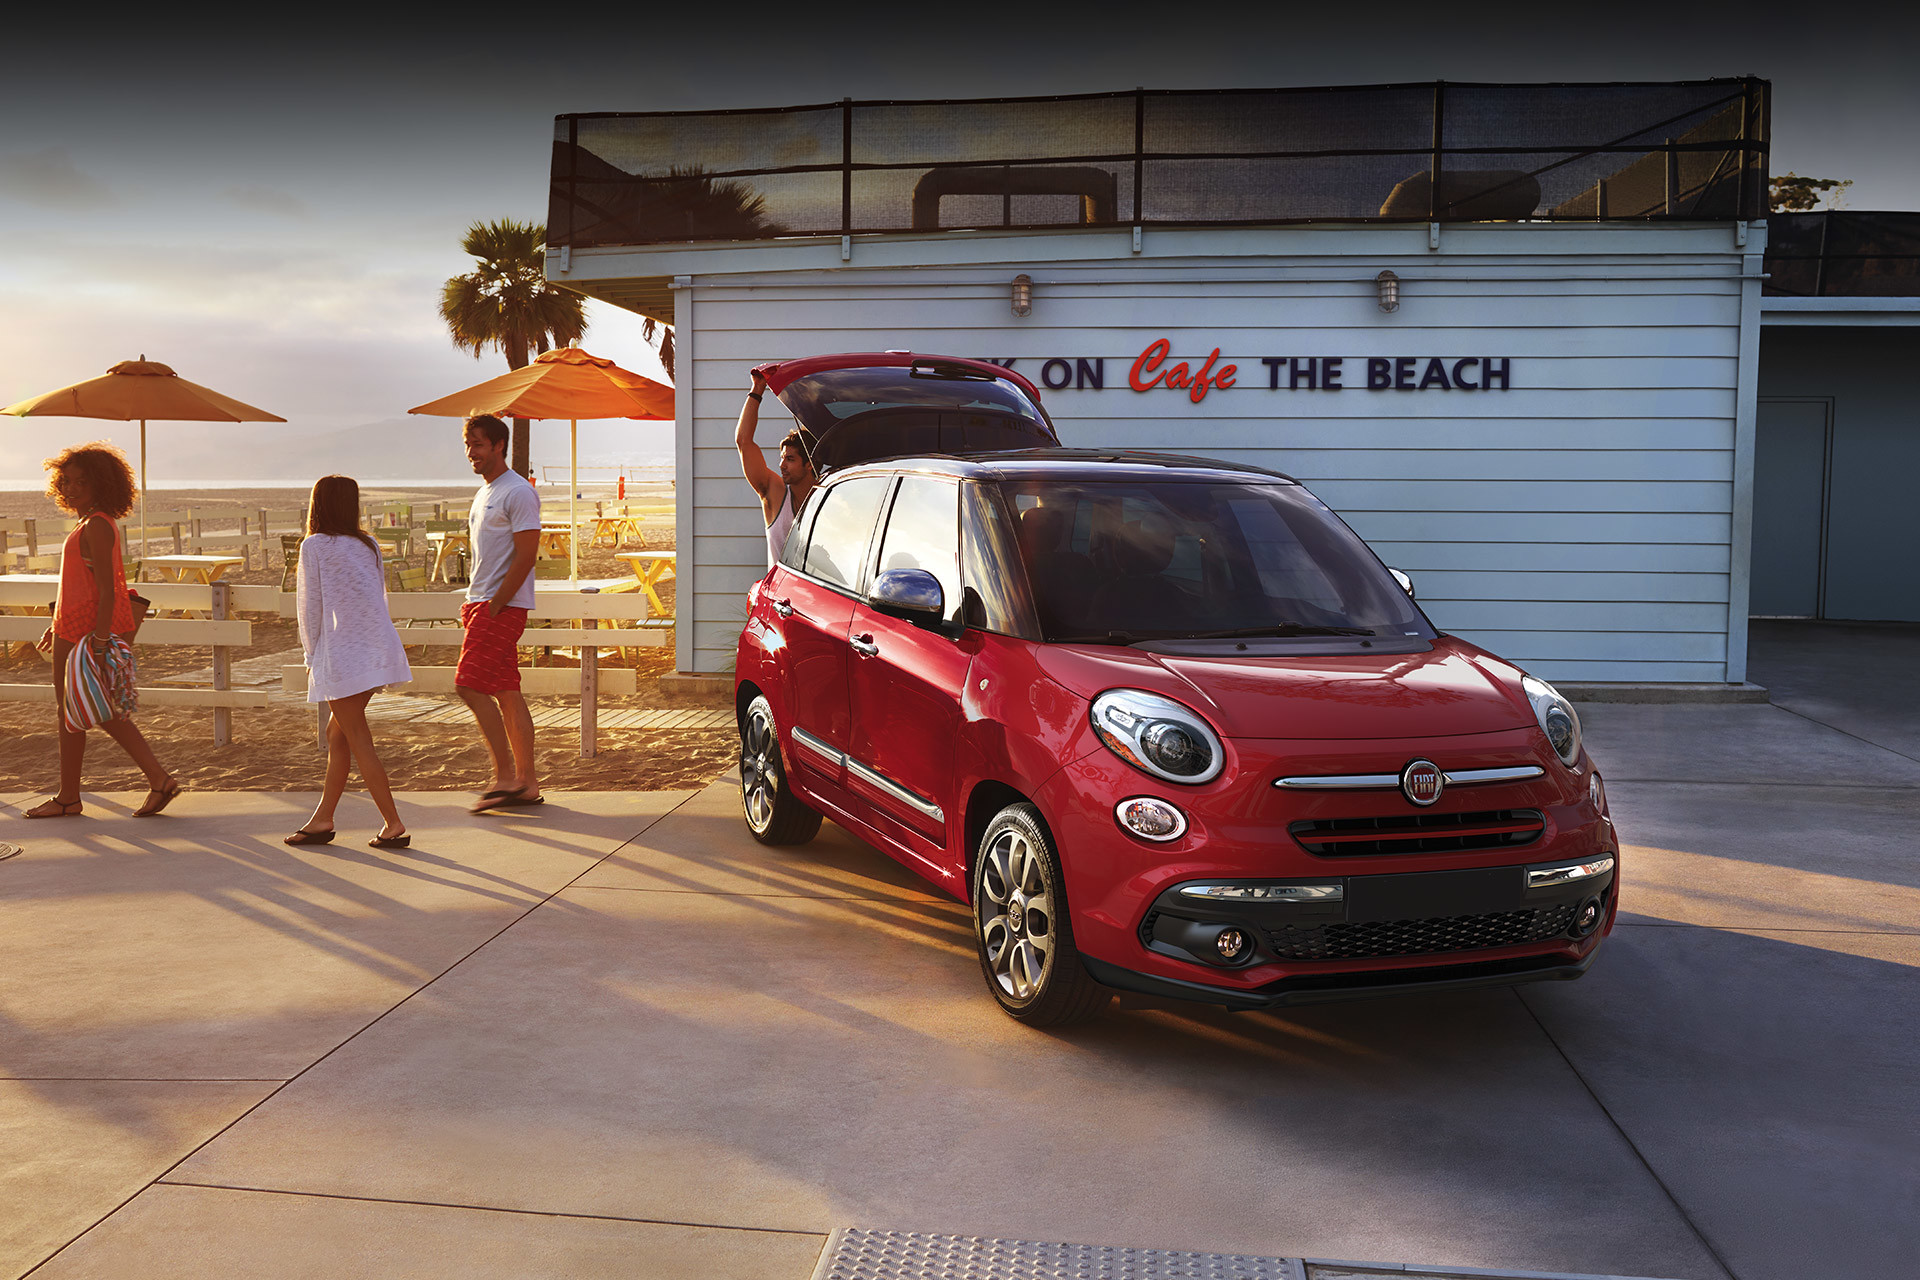 2019 Fiat 500L parked on beach boardwalk with trunk open, shown in red